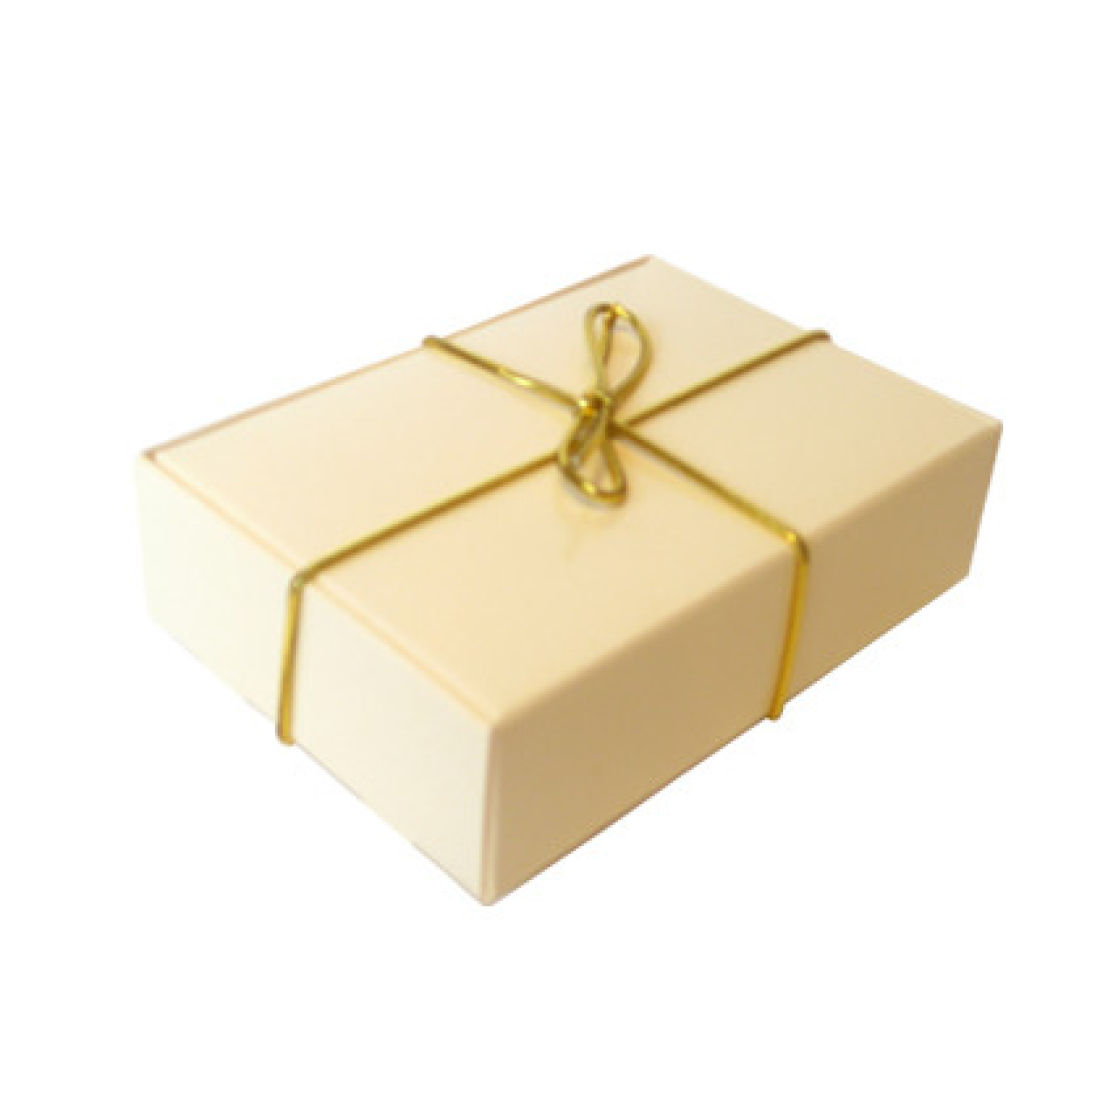 Ivory Wedding Cake Box - Pack of 6 | Squires Kitchen Shop